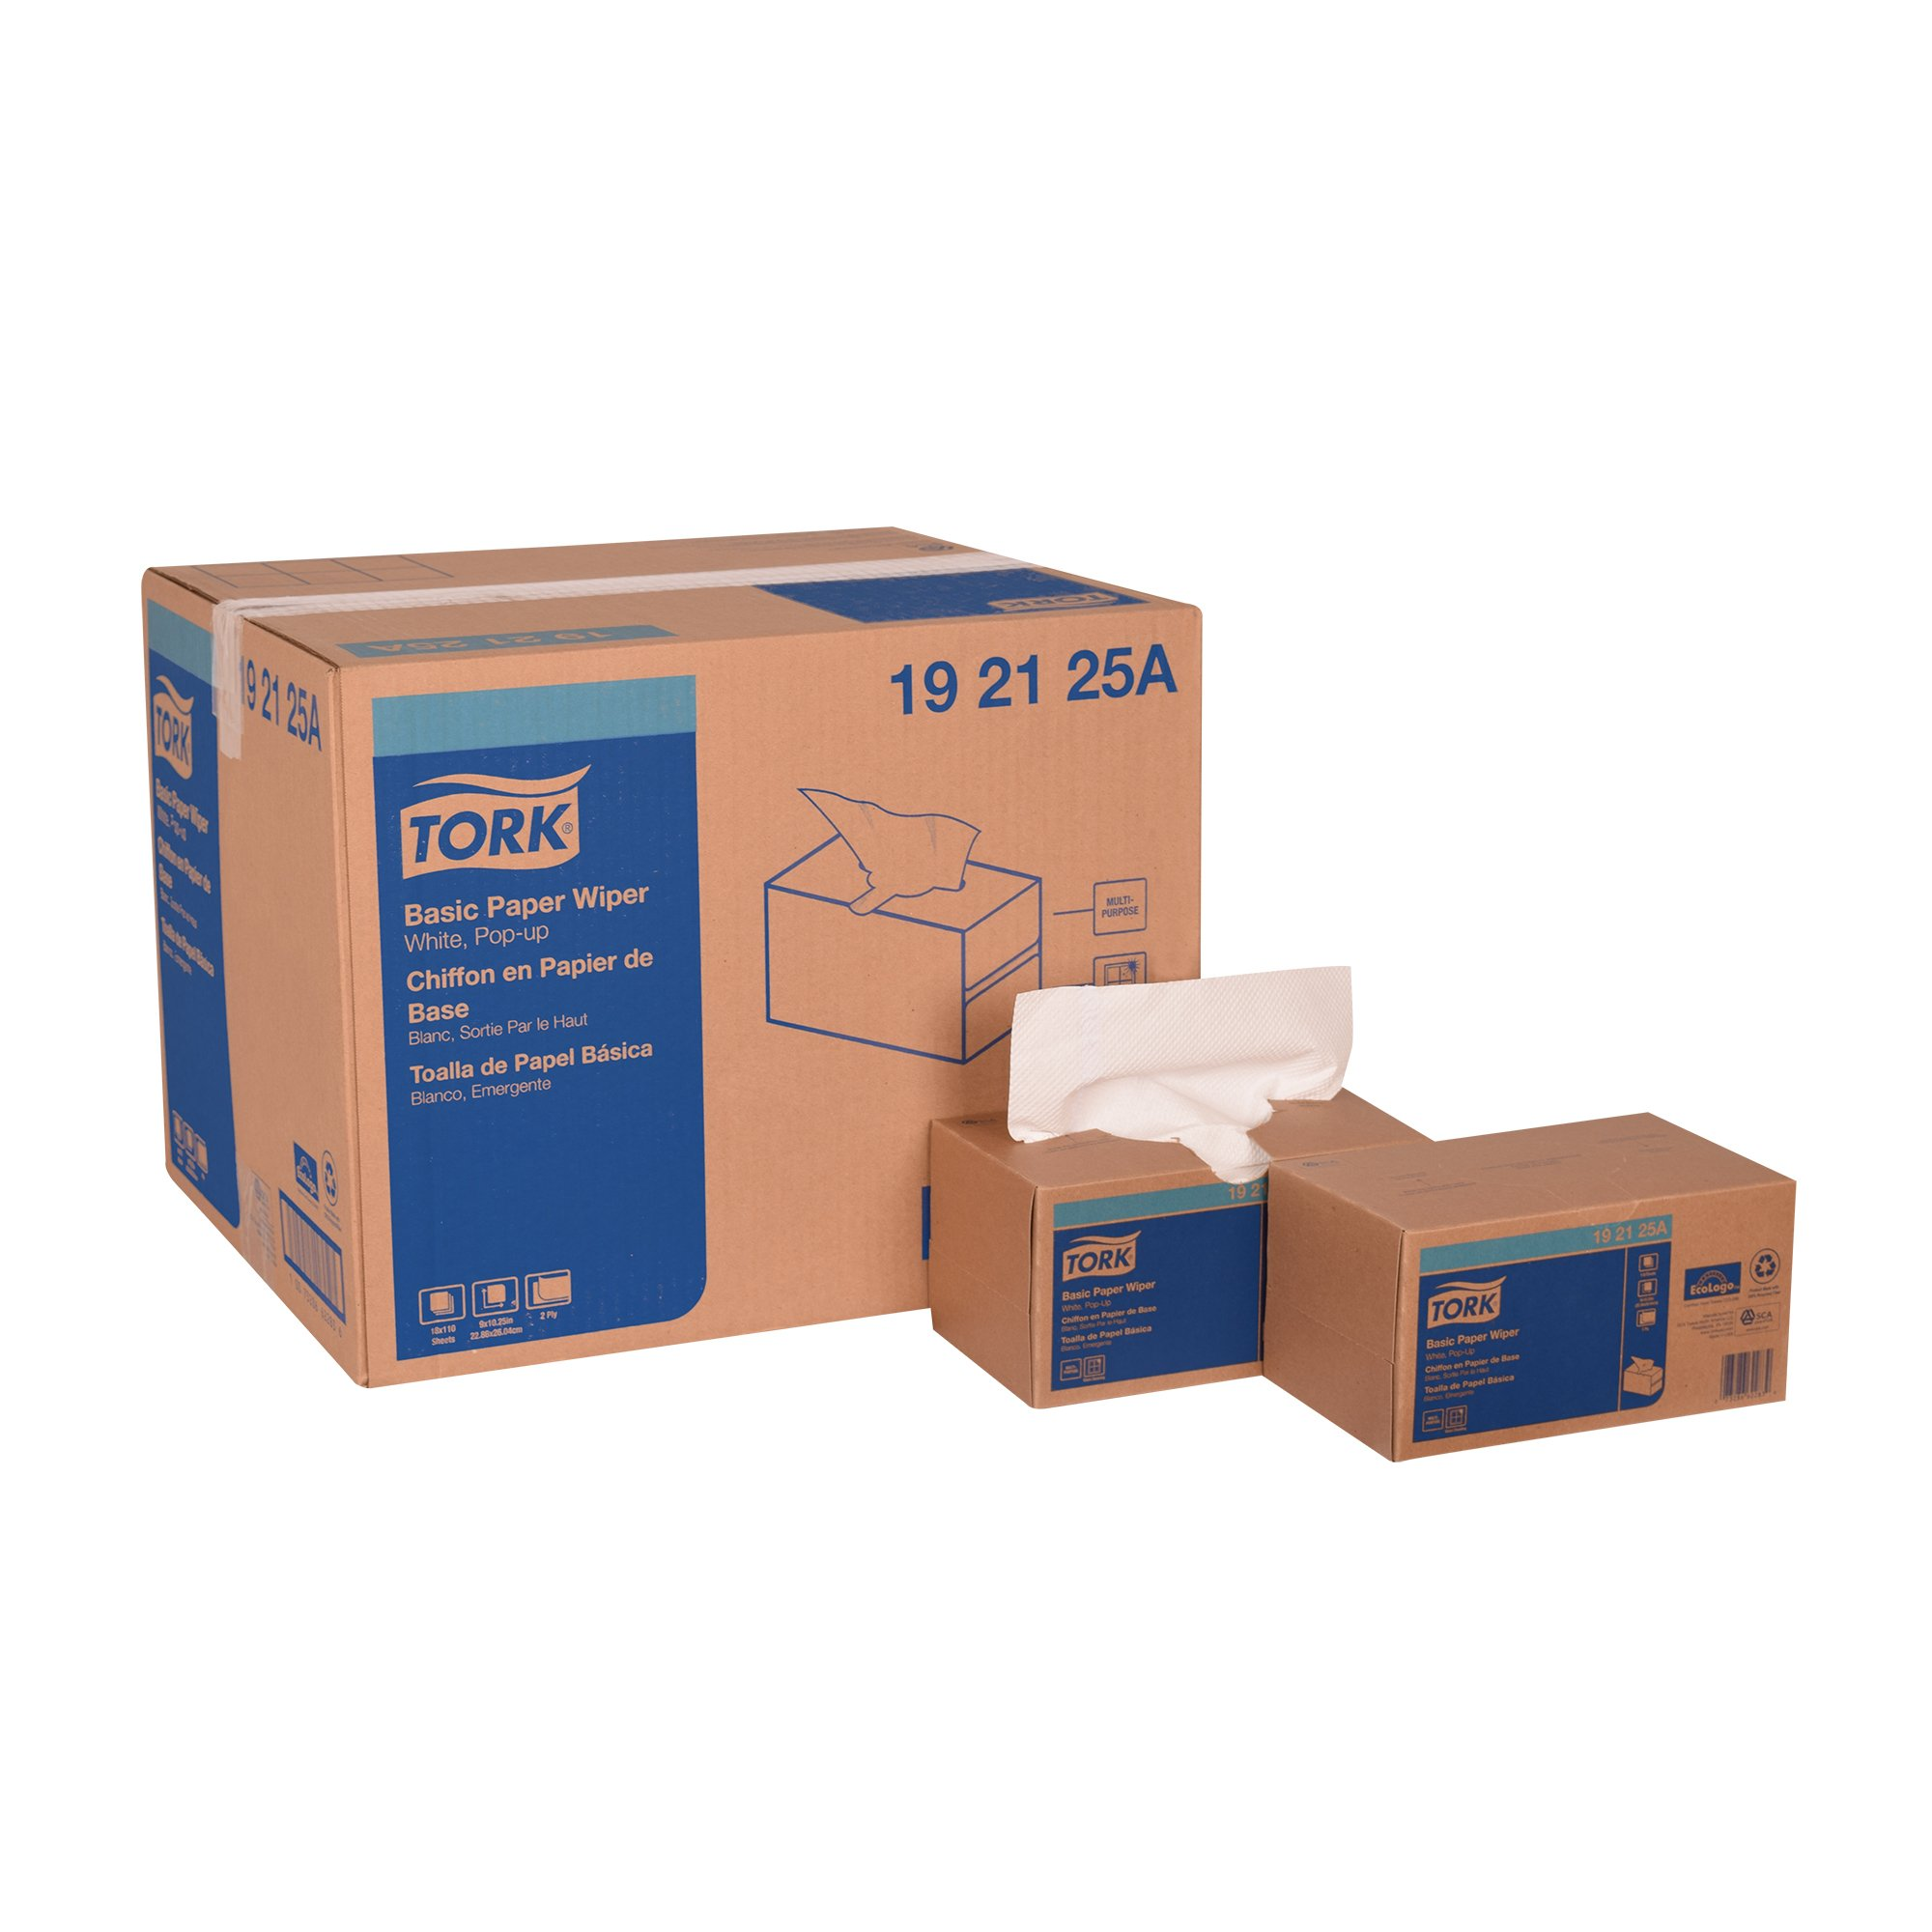 Tork 192125A Basic Paper Pop-Up Box, 2-Ply, 9'' Width x 10.25'' Length, White, (Case of 18 Boxes, 110 per Box, 1,980 Towels)